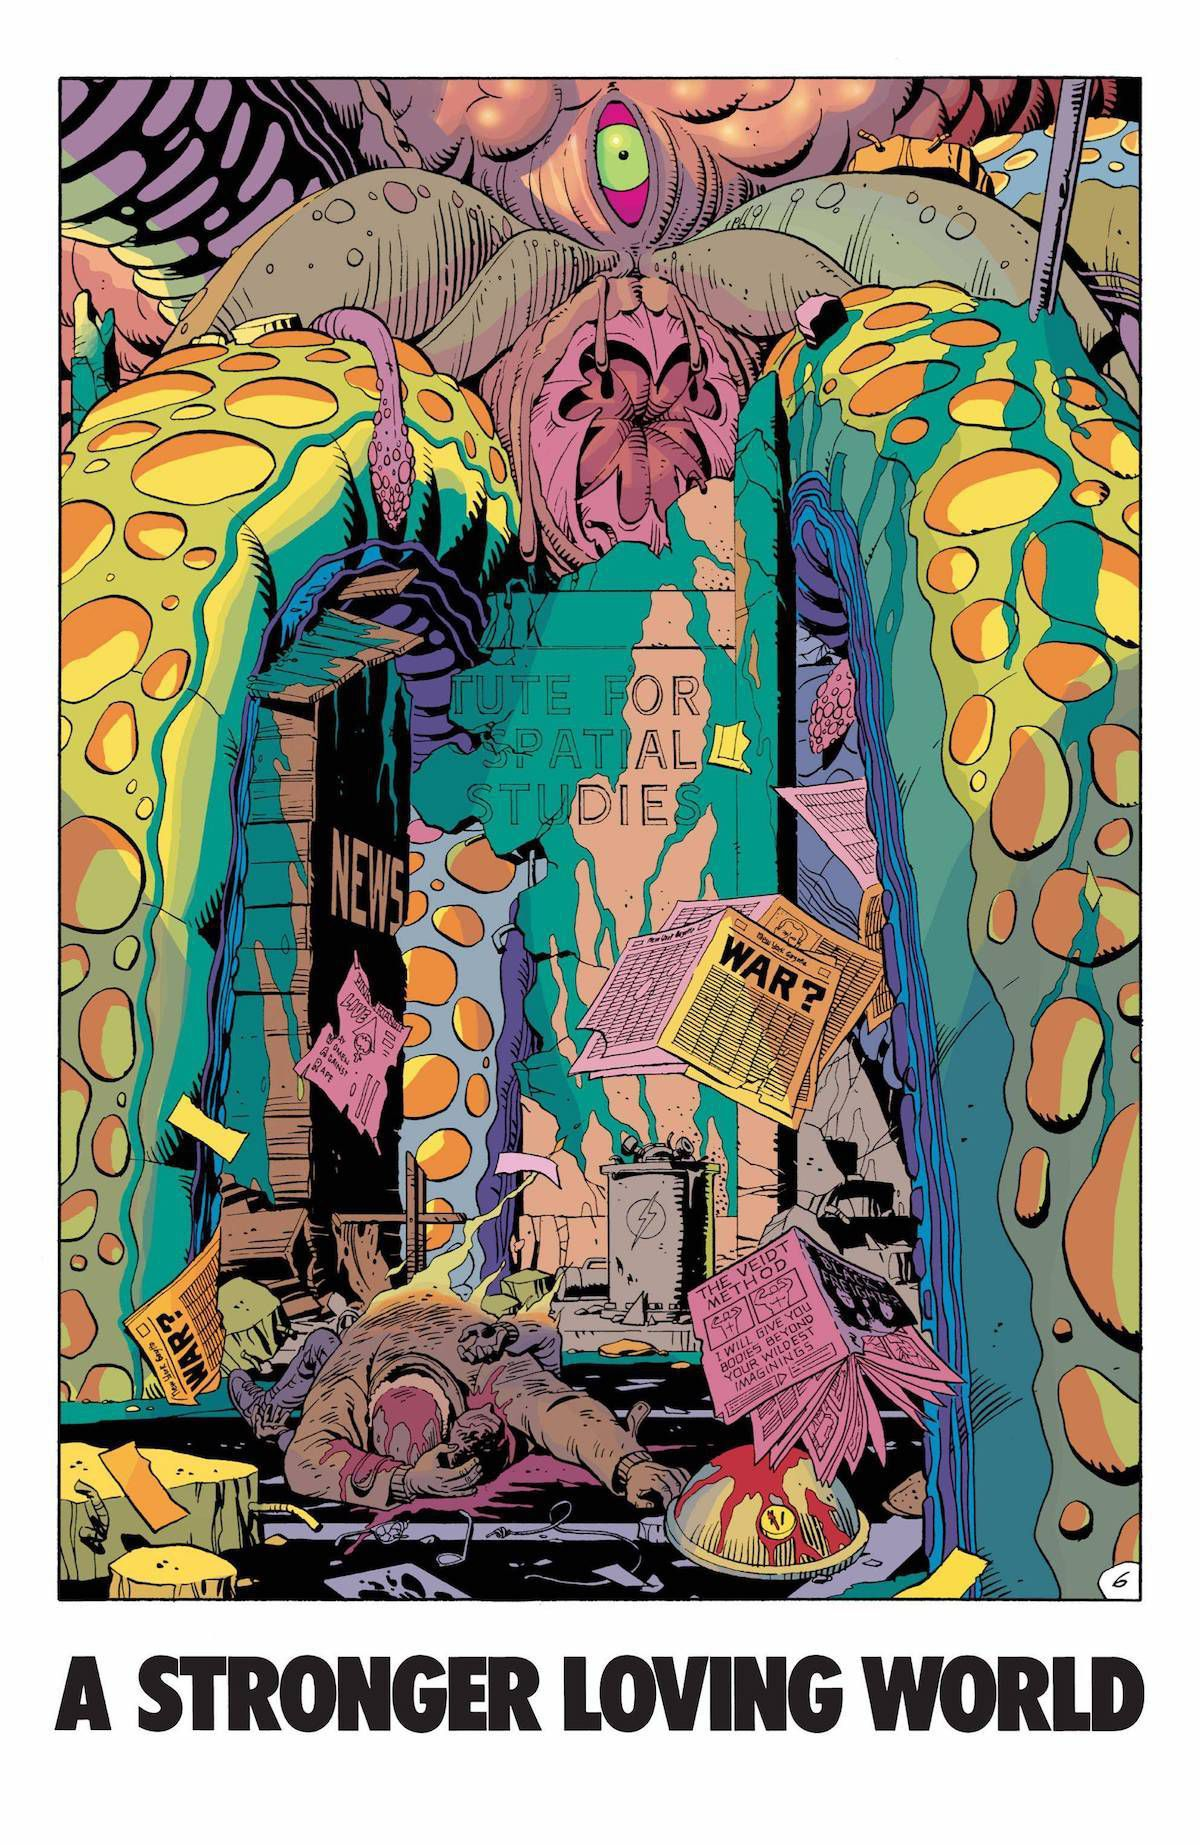 """watchmen the alien squid monster hangs on new york city with the words """"a stronger loving world"""" underneath the image"""